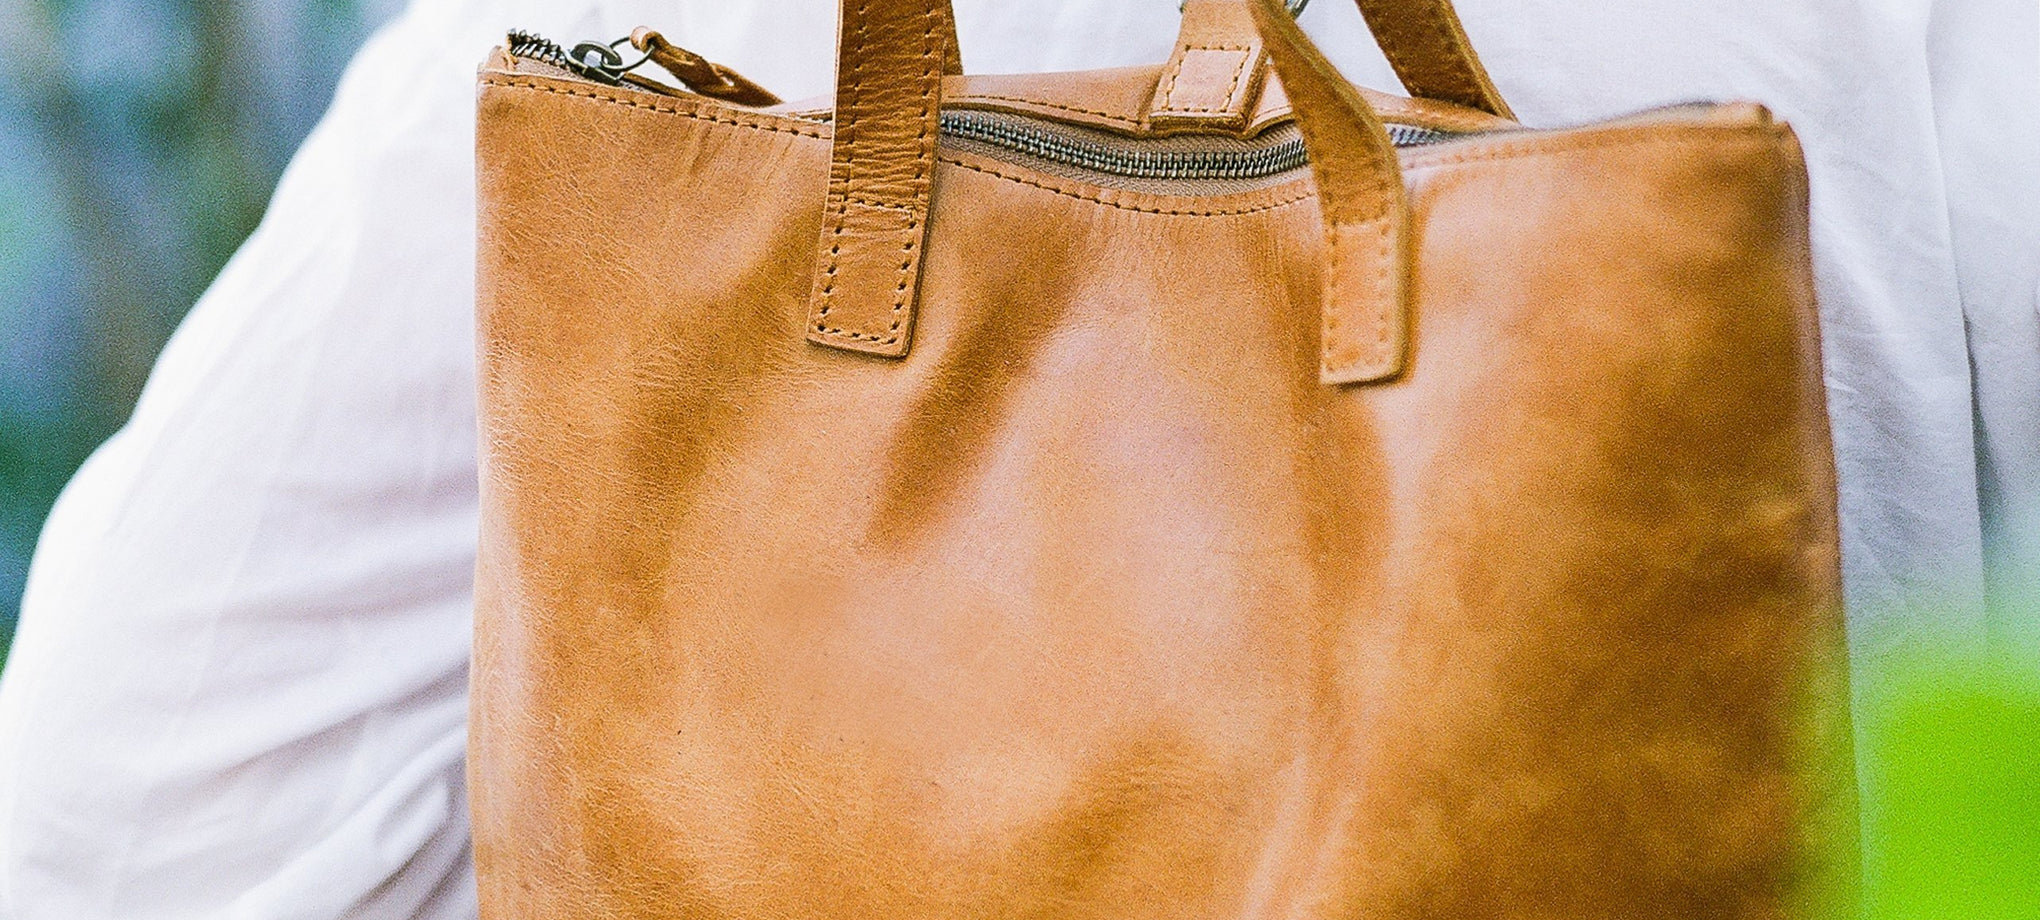 Your perfect travel bag for your packing style